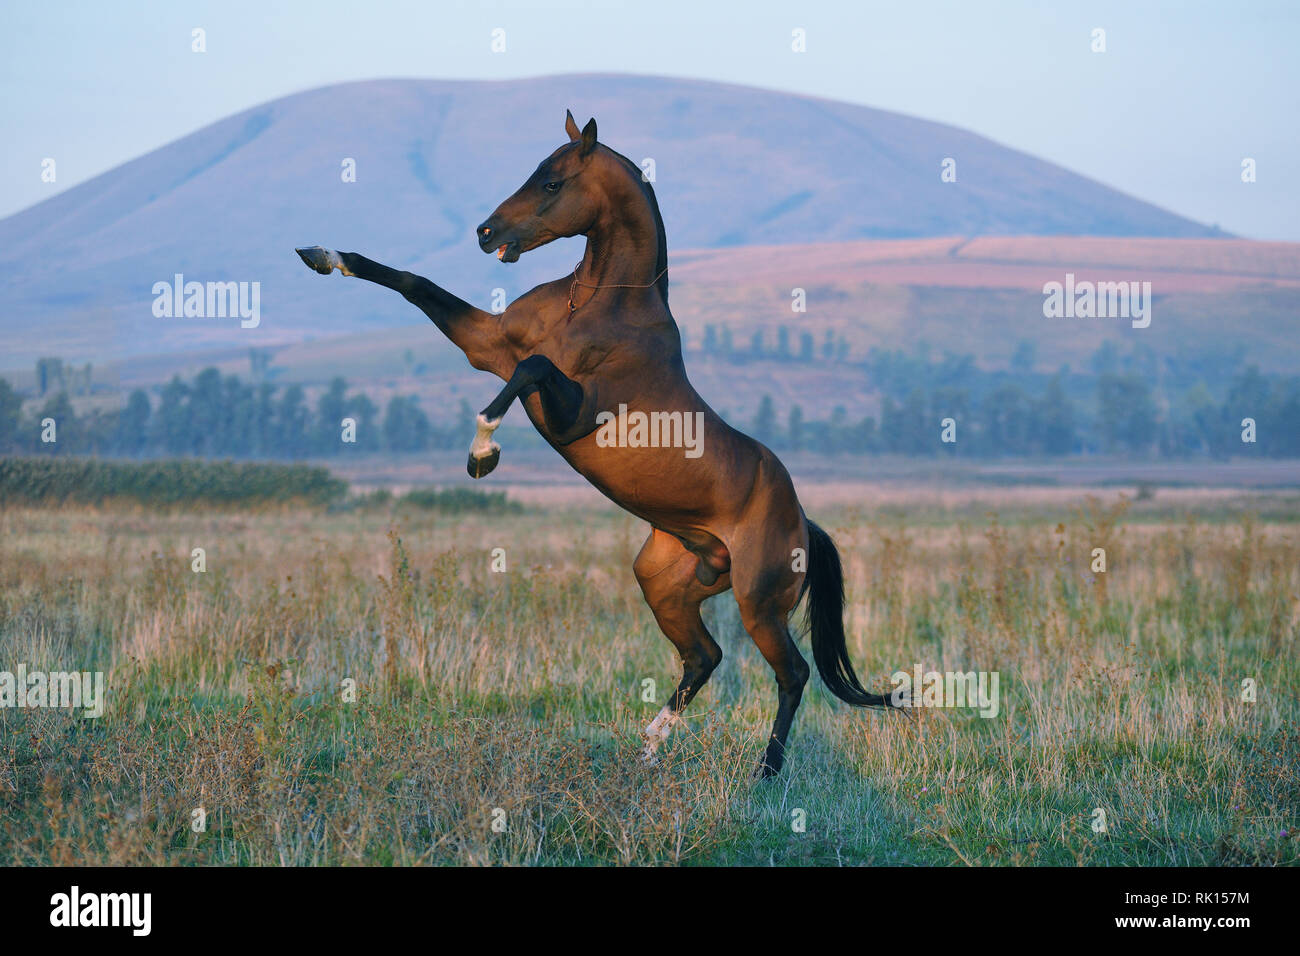 Fierce and brutal Akhal-Teke stallion rears standing on one leg. Horizontal,sideways, mountain on the background. - Stock Image